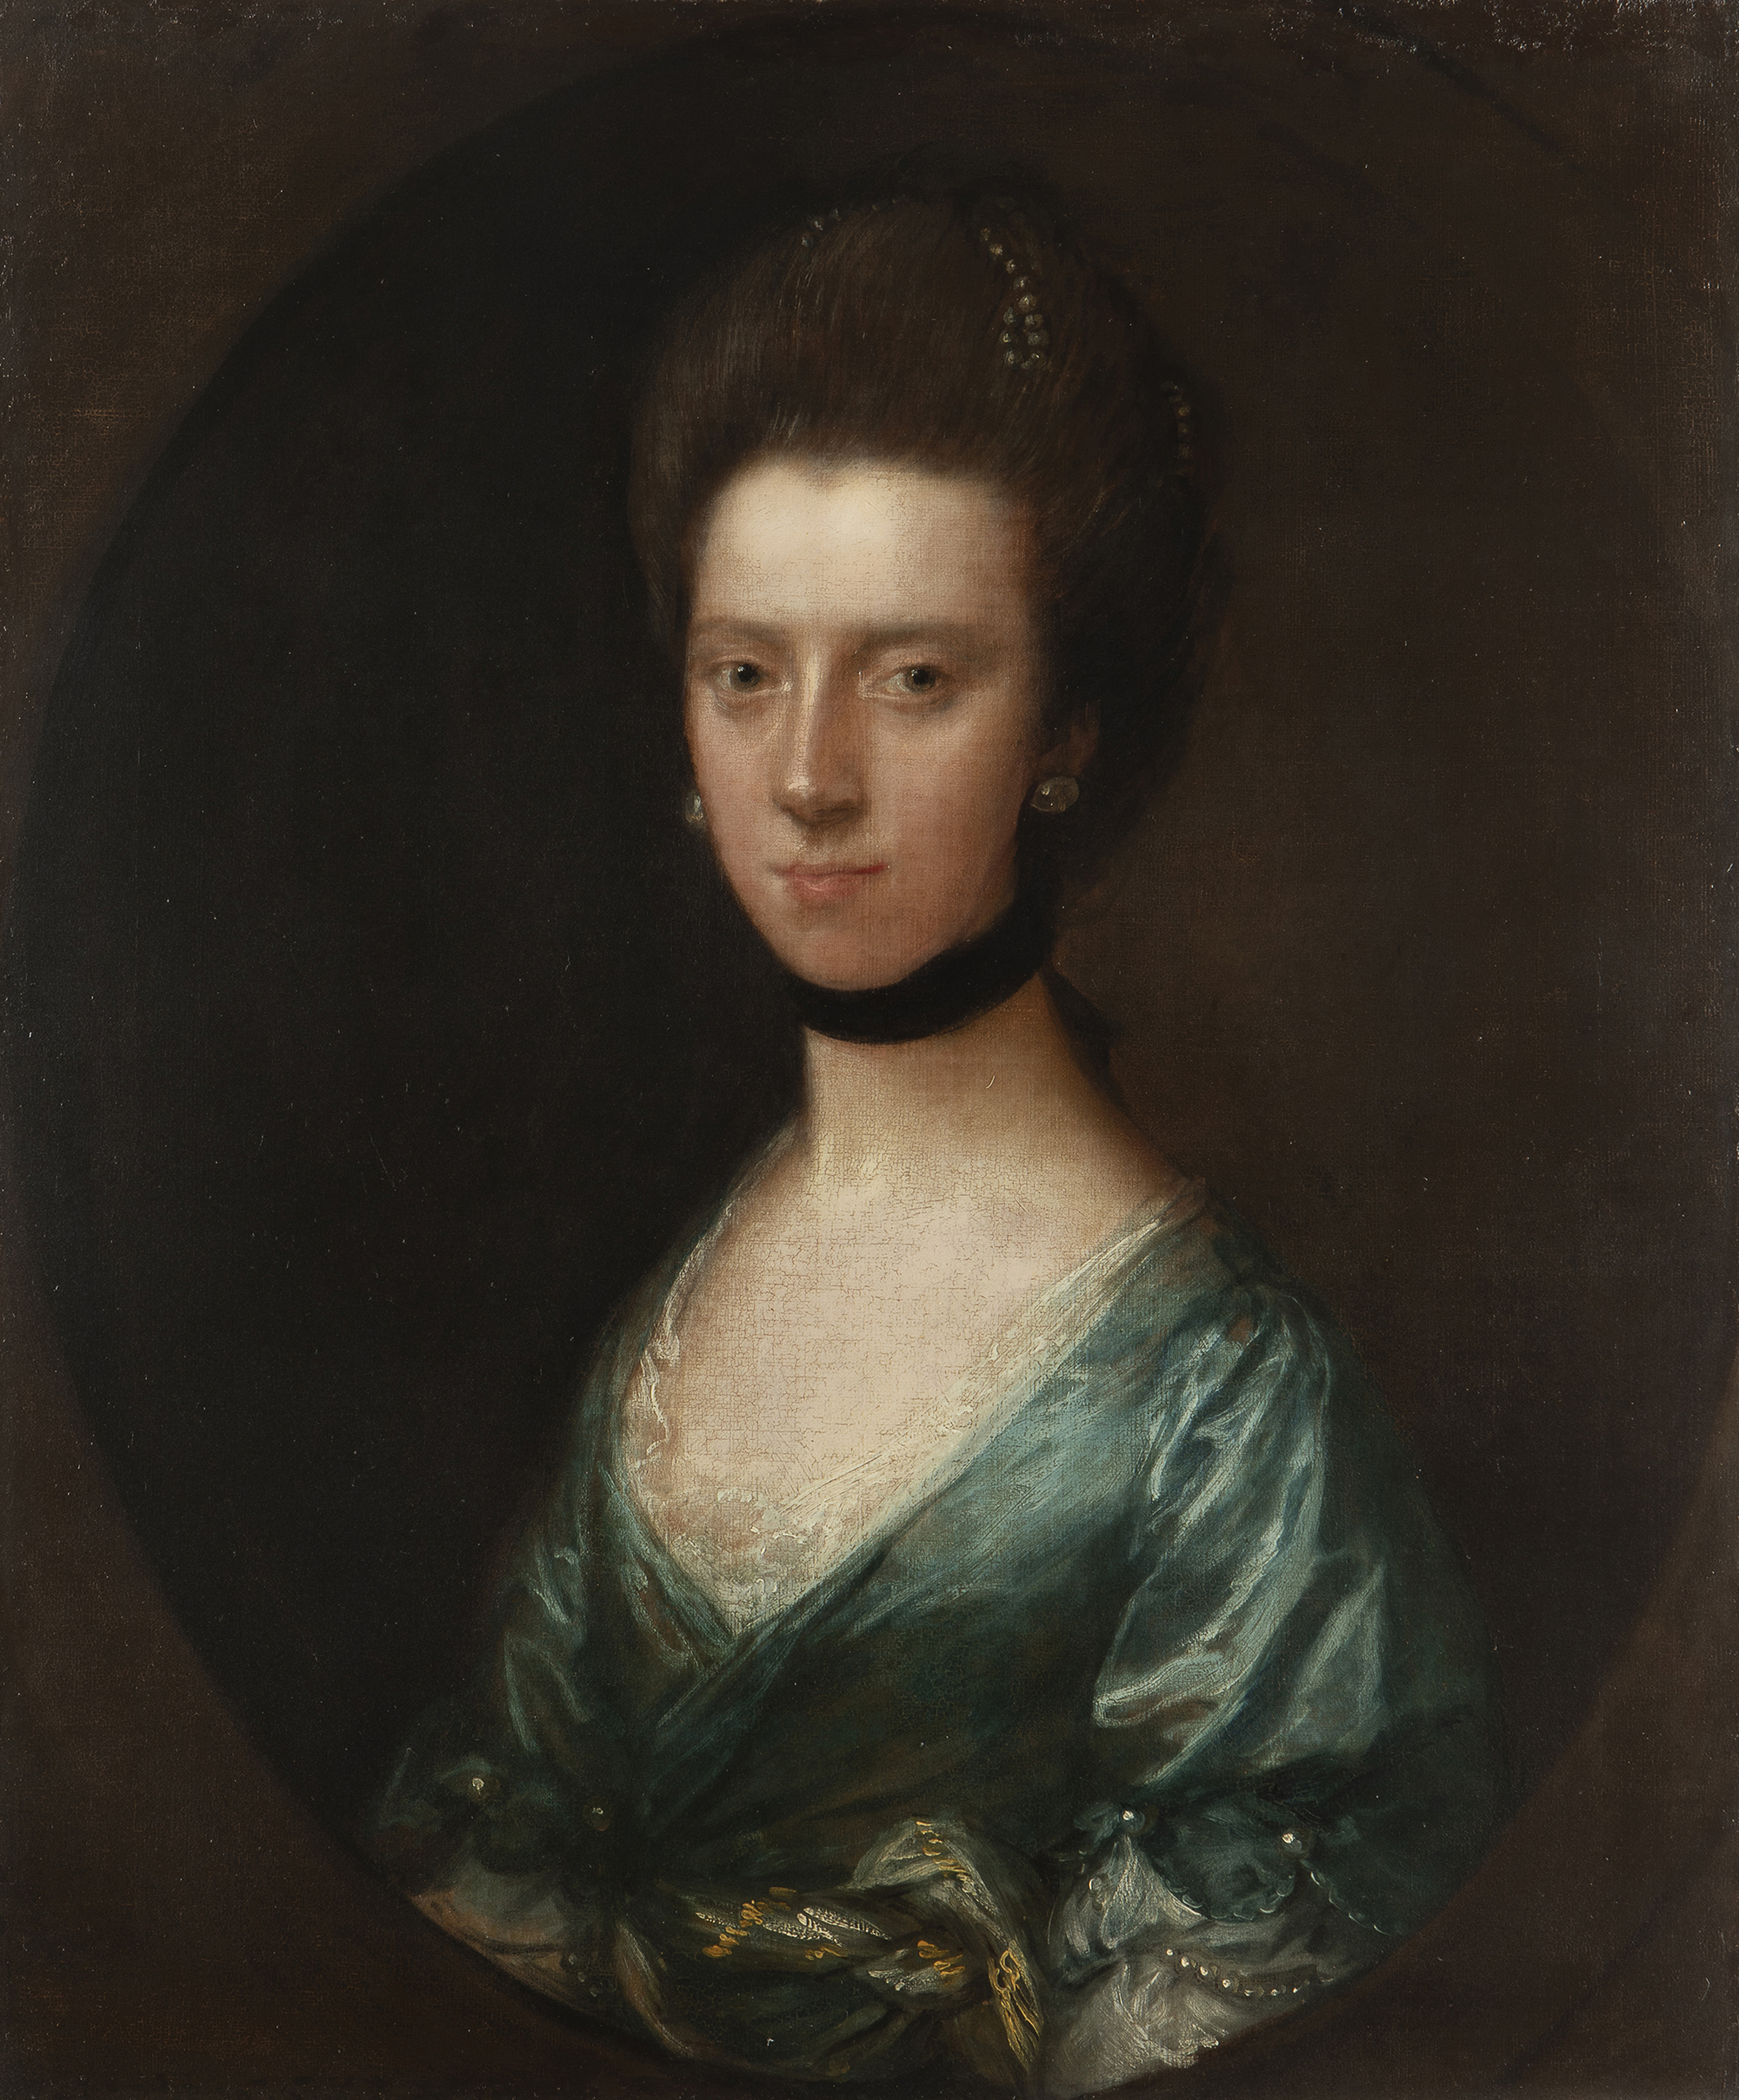 Thomas Gainsborough (1727-1788 British) Portrait of Mrs. Isaac Elton, bust-length, Oil on canvas laid to canvas, in a painted oval, $50,000-70,000